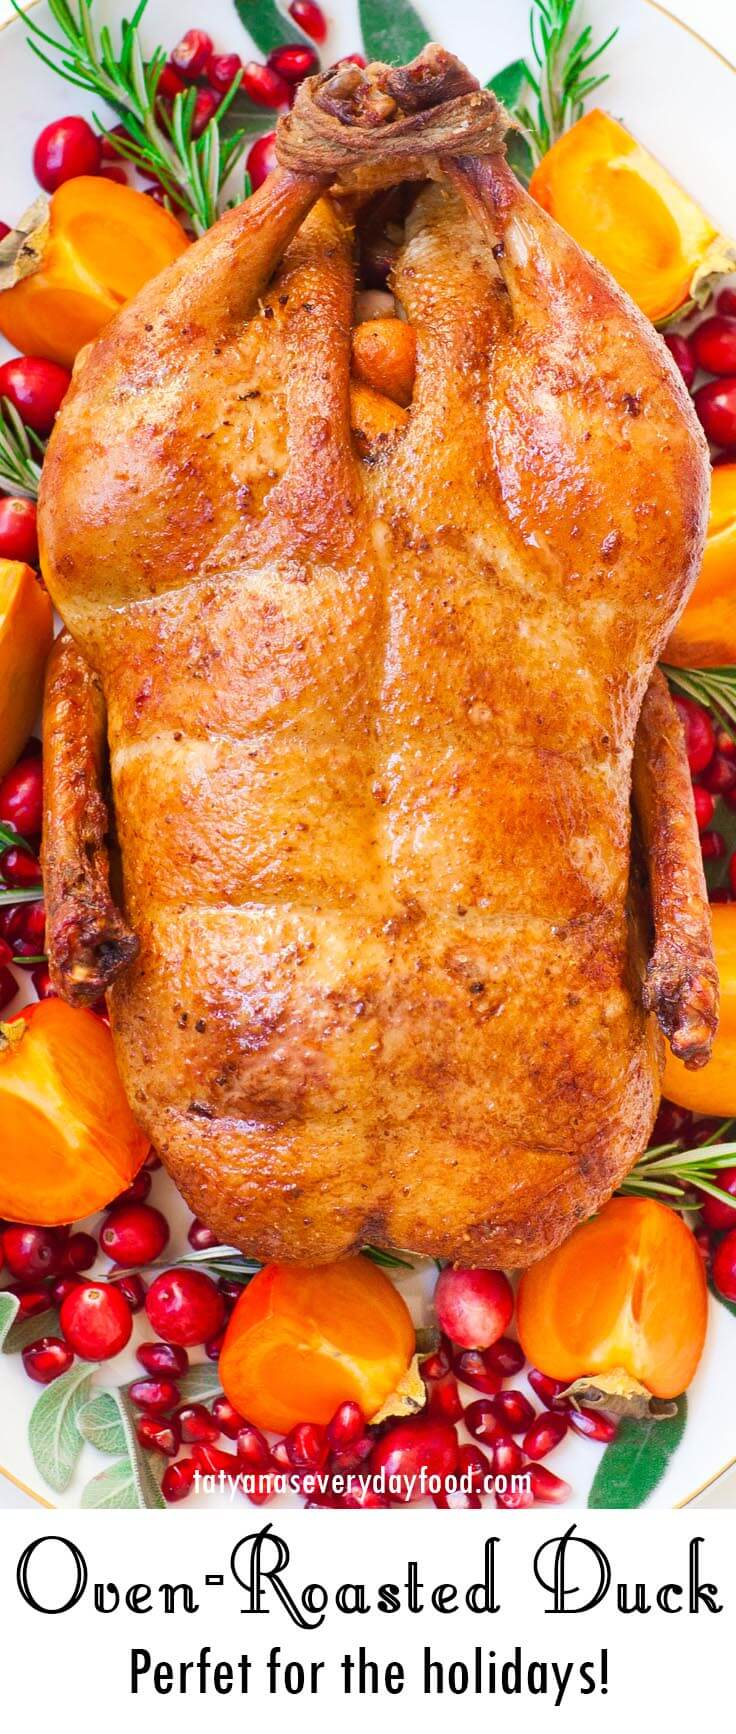 Oven Roasted Duck video recipe